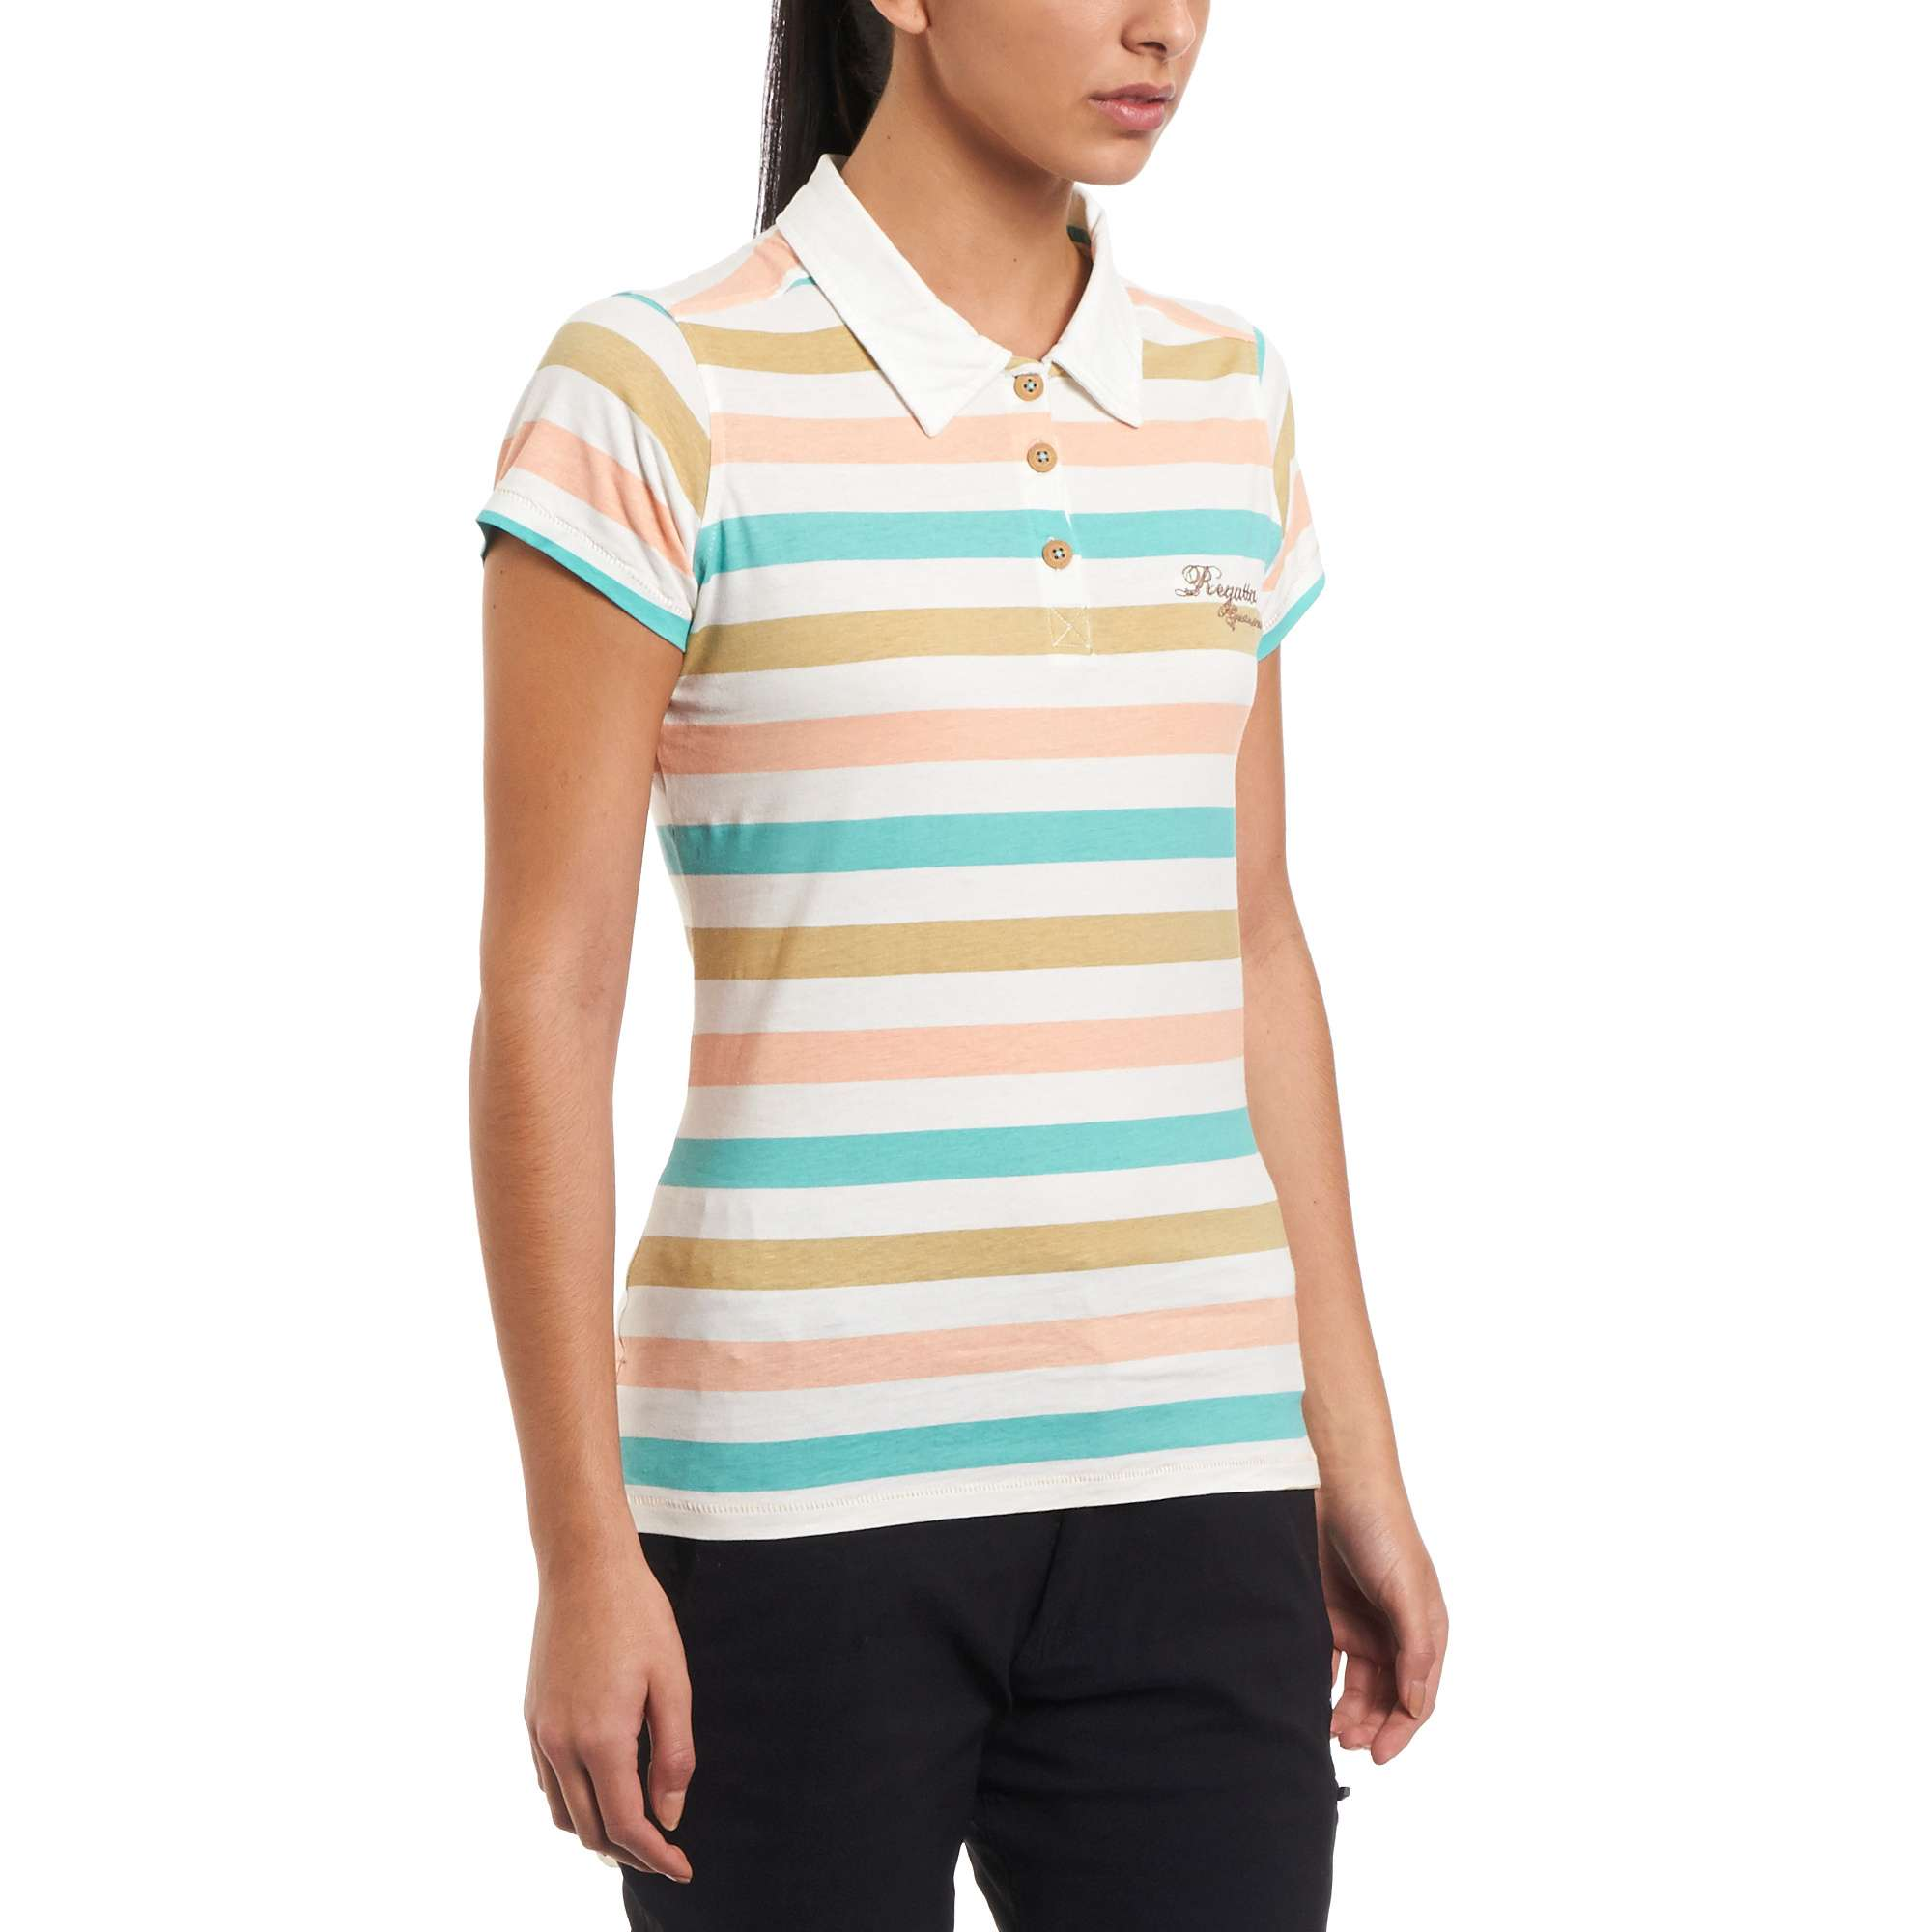 REGATTA Women's Goodluck Polo Shirt